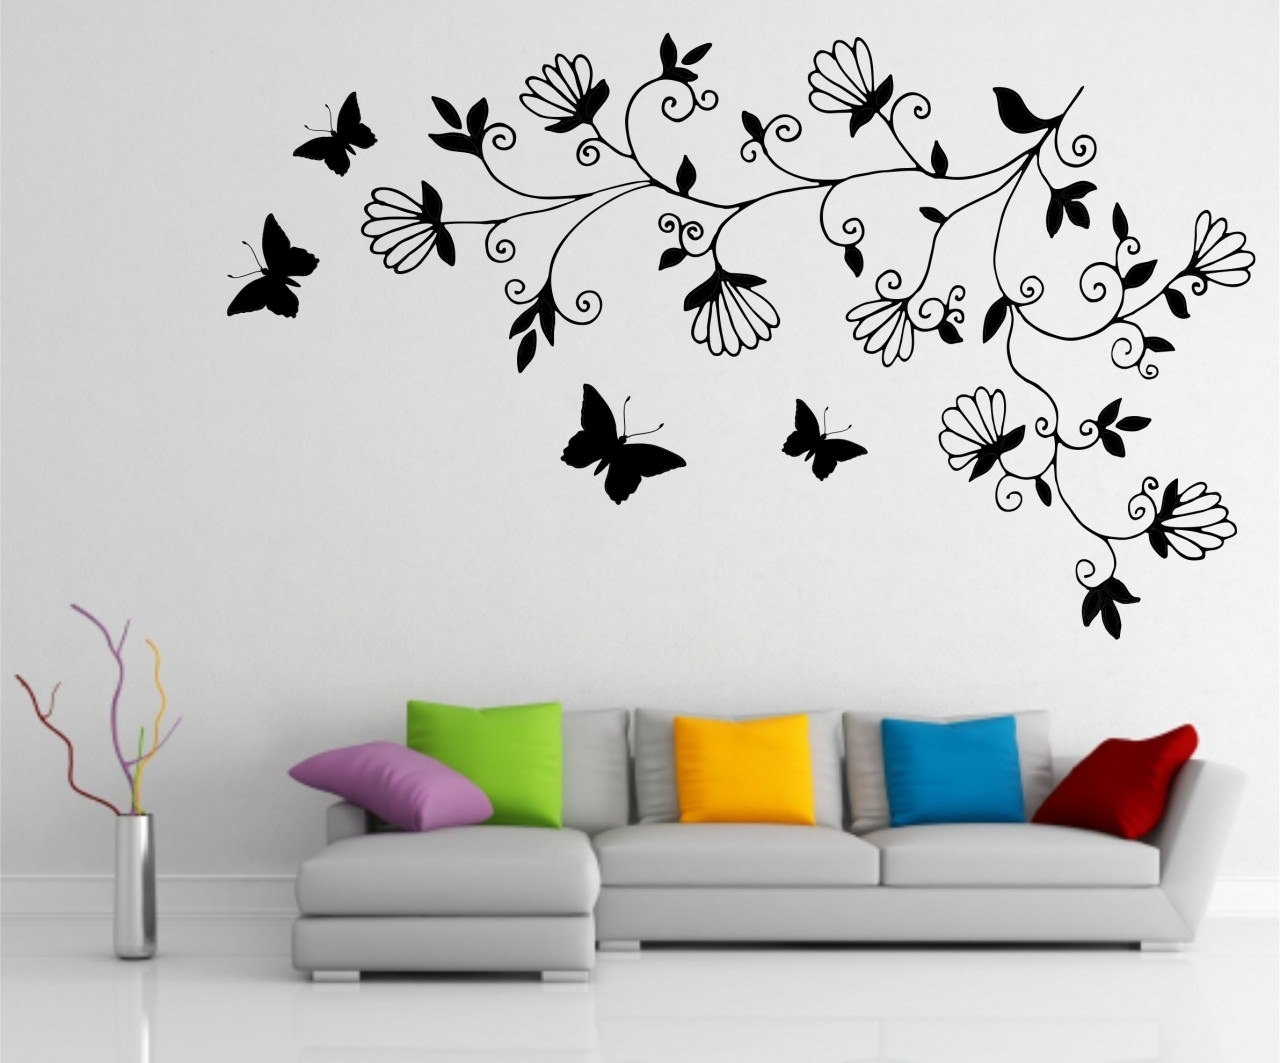 Wall Paint Designs Living Room Worthy Golime – Home Art Decor | #77394 Inside Latest Living Room Painting Wall Art (View 20 of 20)